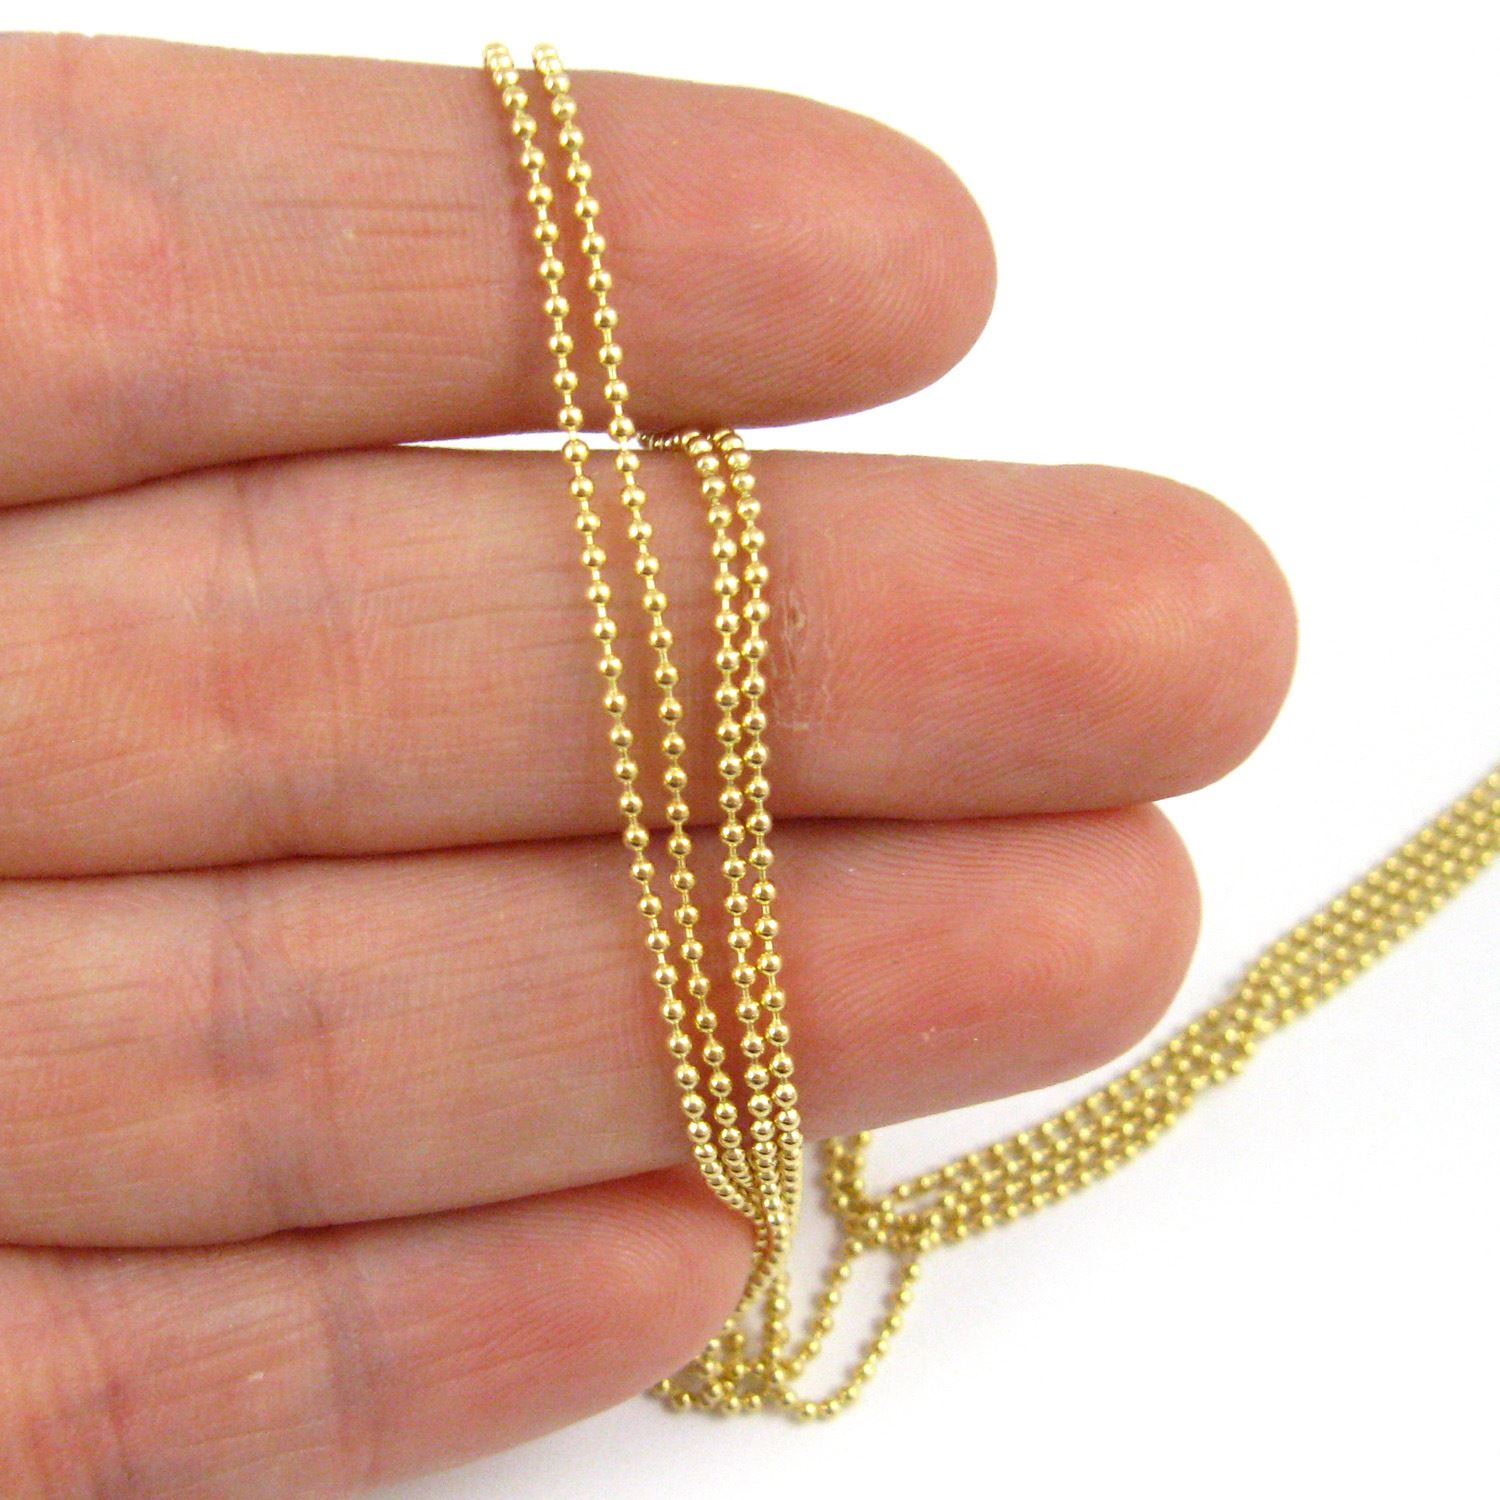 22K Gold plated Sterling Silver Chain- Bulk Ball Chain 1.2mm  (Sold Per Foot)